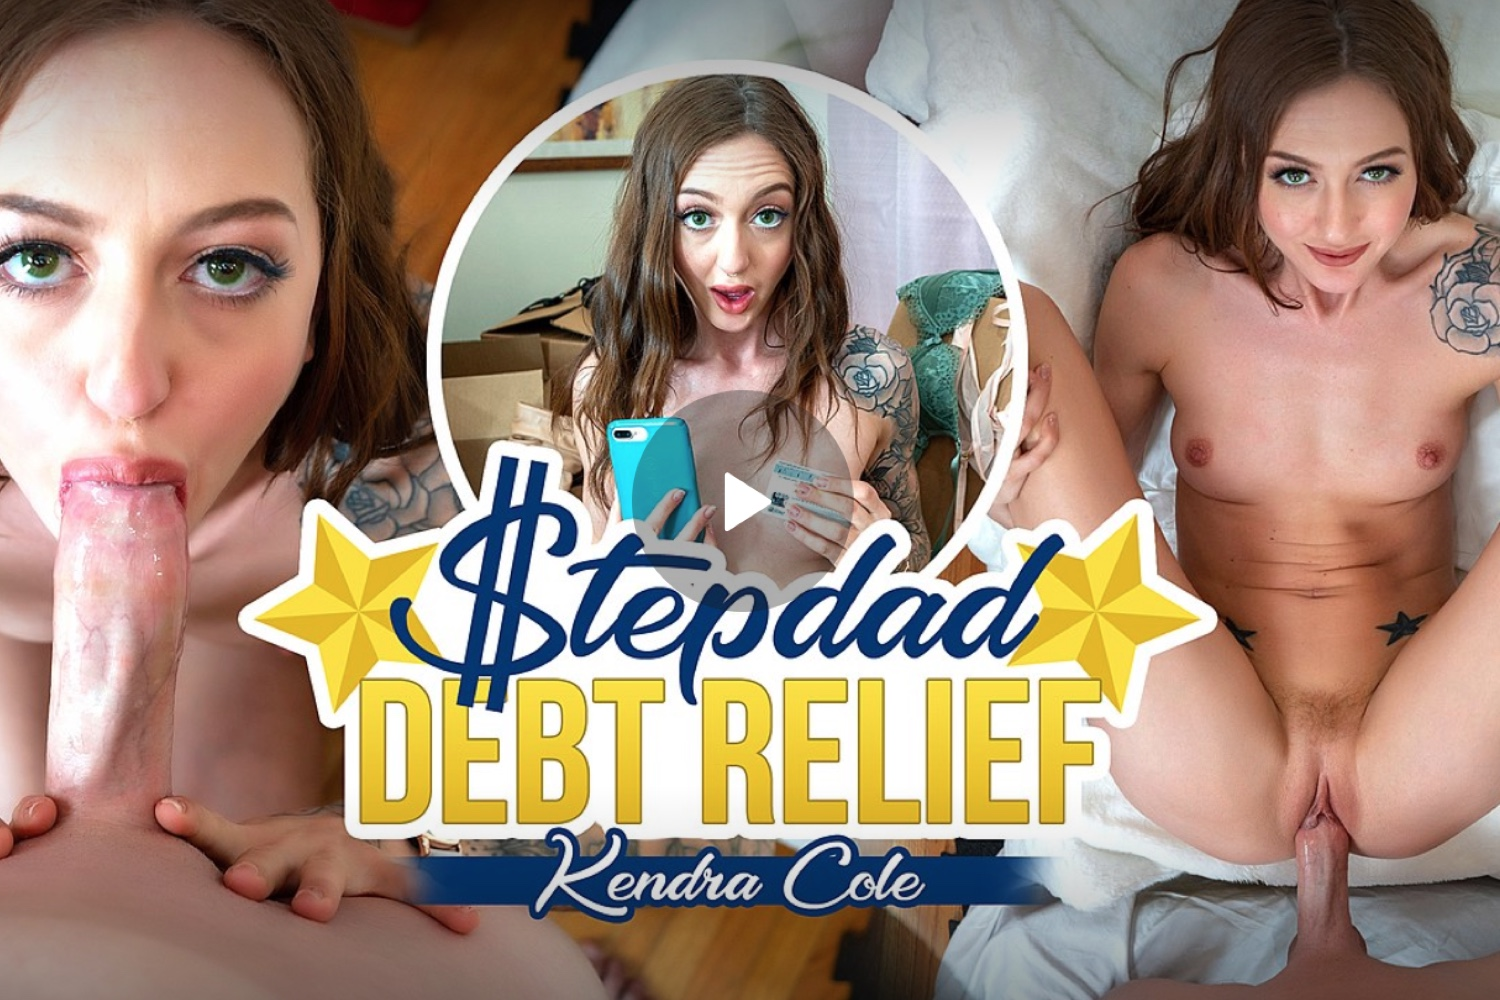 Stepdad Debt Relief - Kendra Cole VR Porn - Kendra Cole Virtual Reality Porn